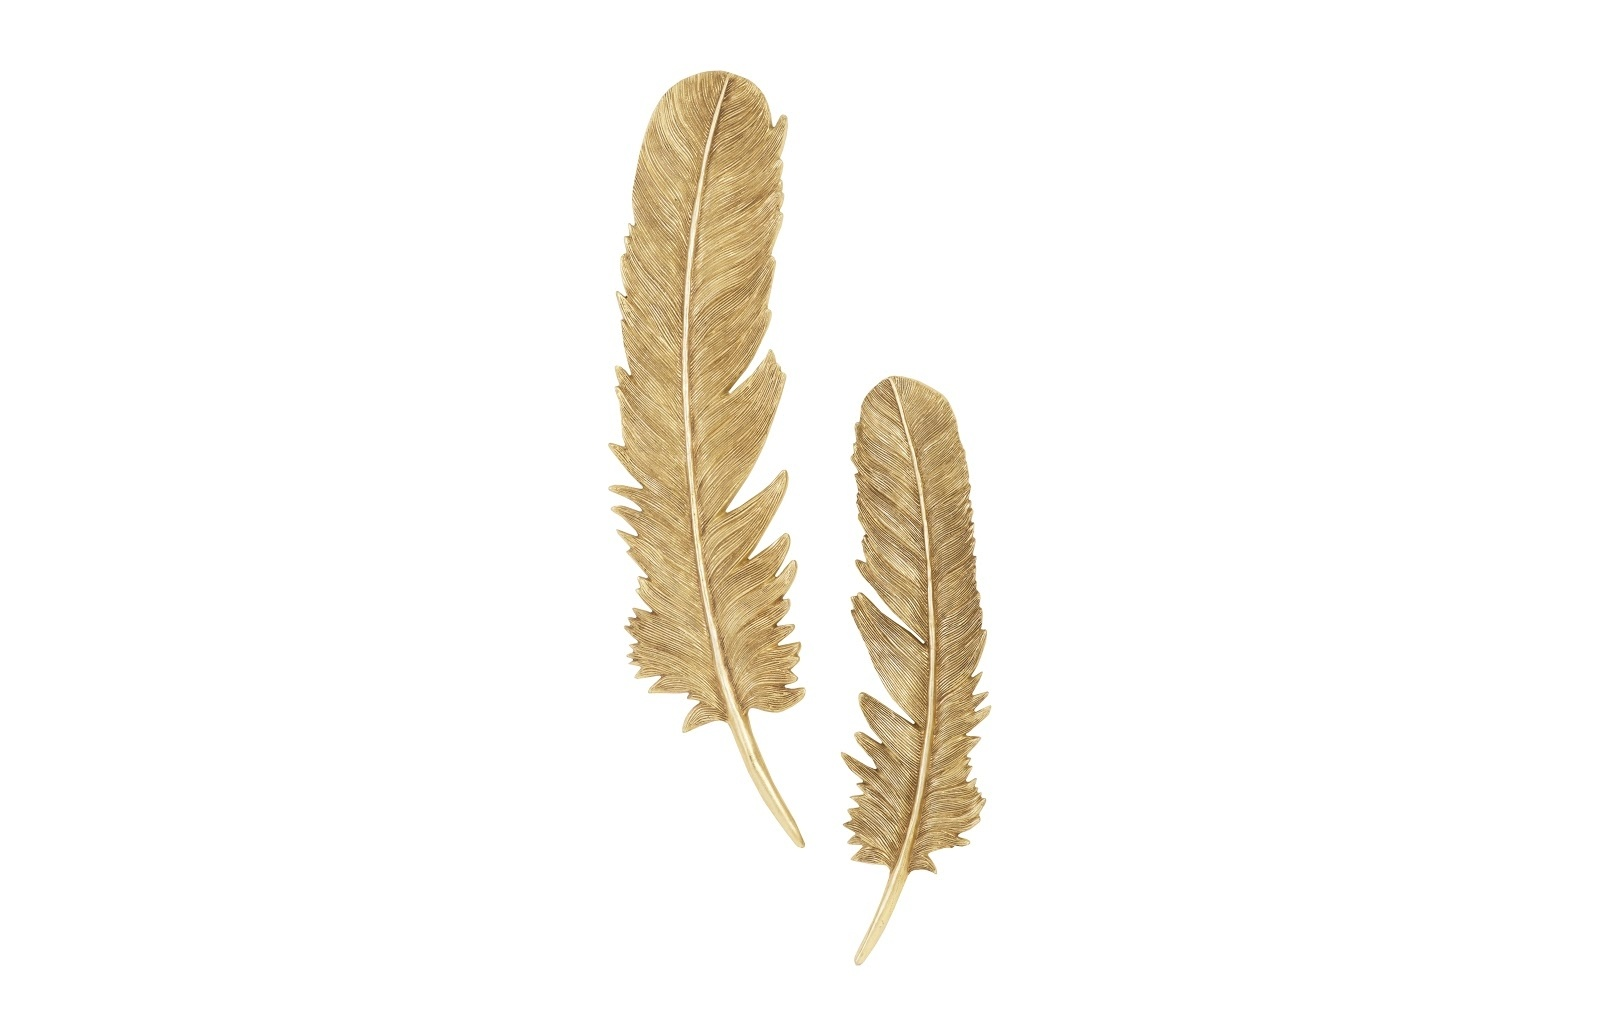 Umo Art Gallery Feathers S set of 2 Gold